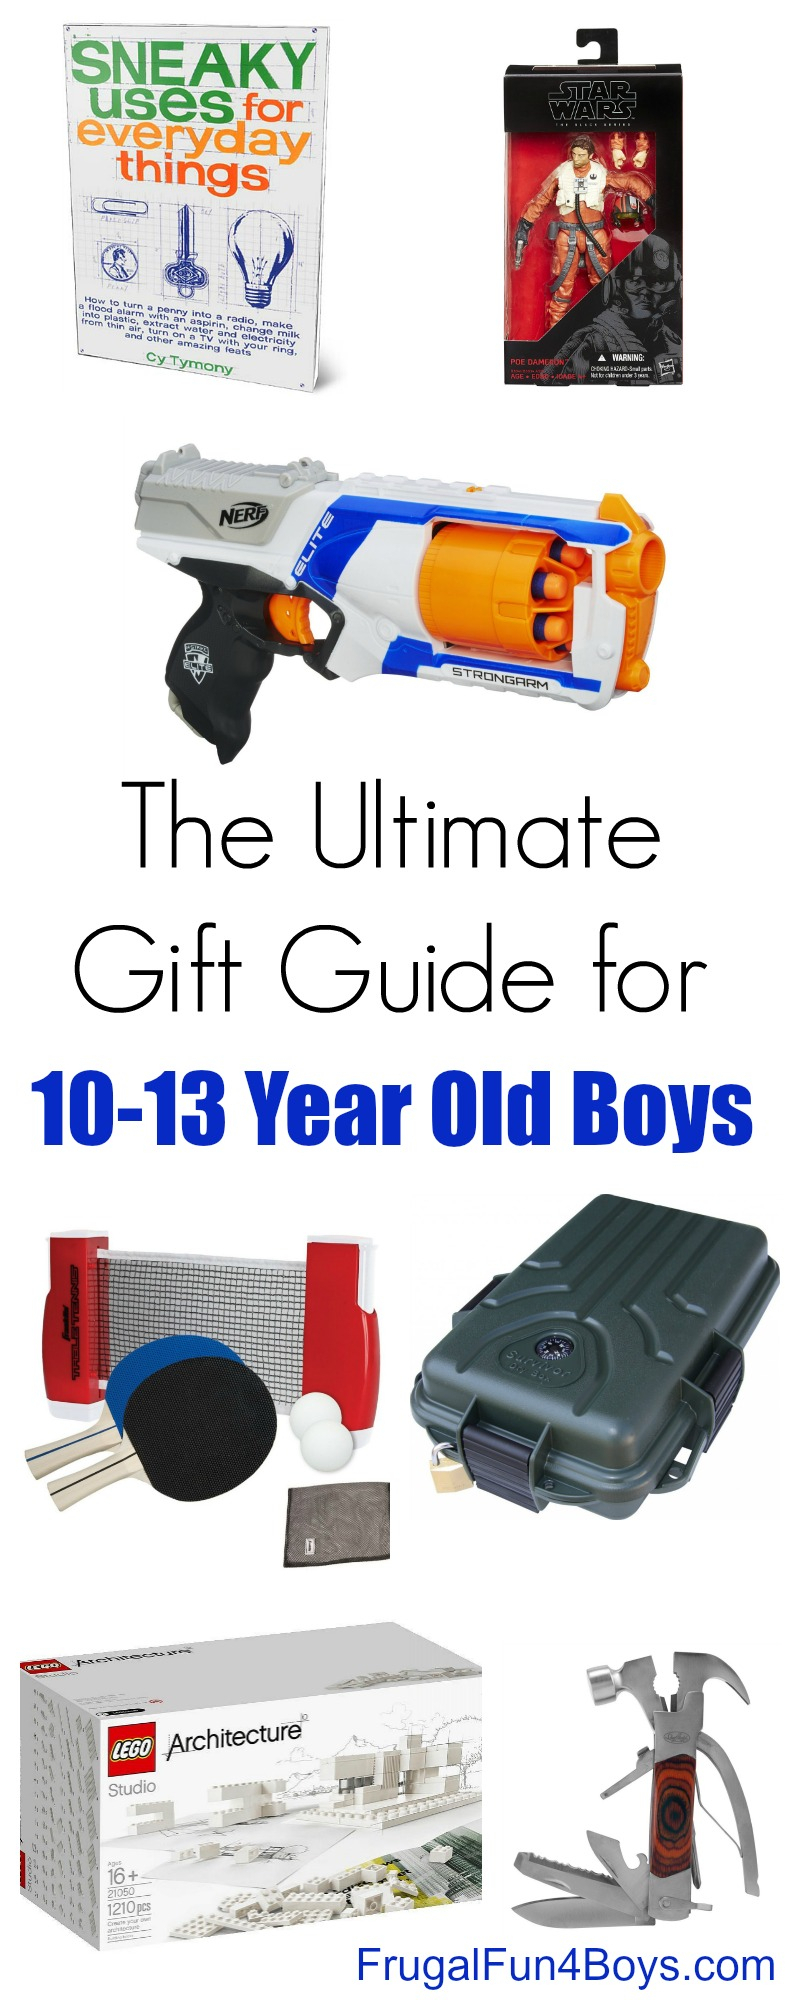 10 Elegant Gift Ideas For A 13 Year Old gift ideas for 10 to 13 year old boys frugal fun for boys and girls 2020